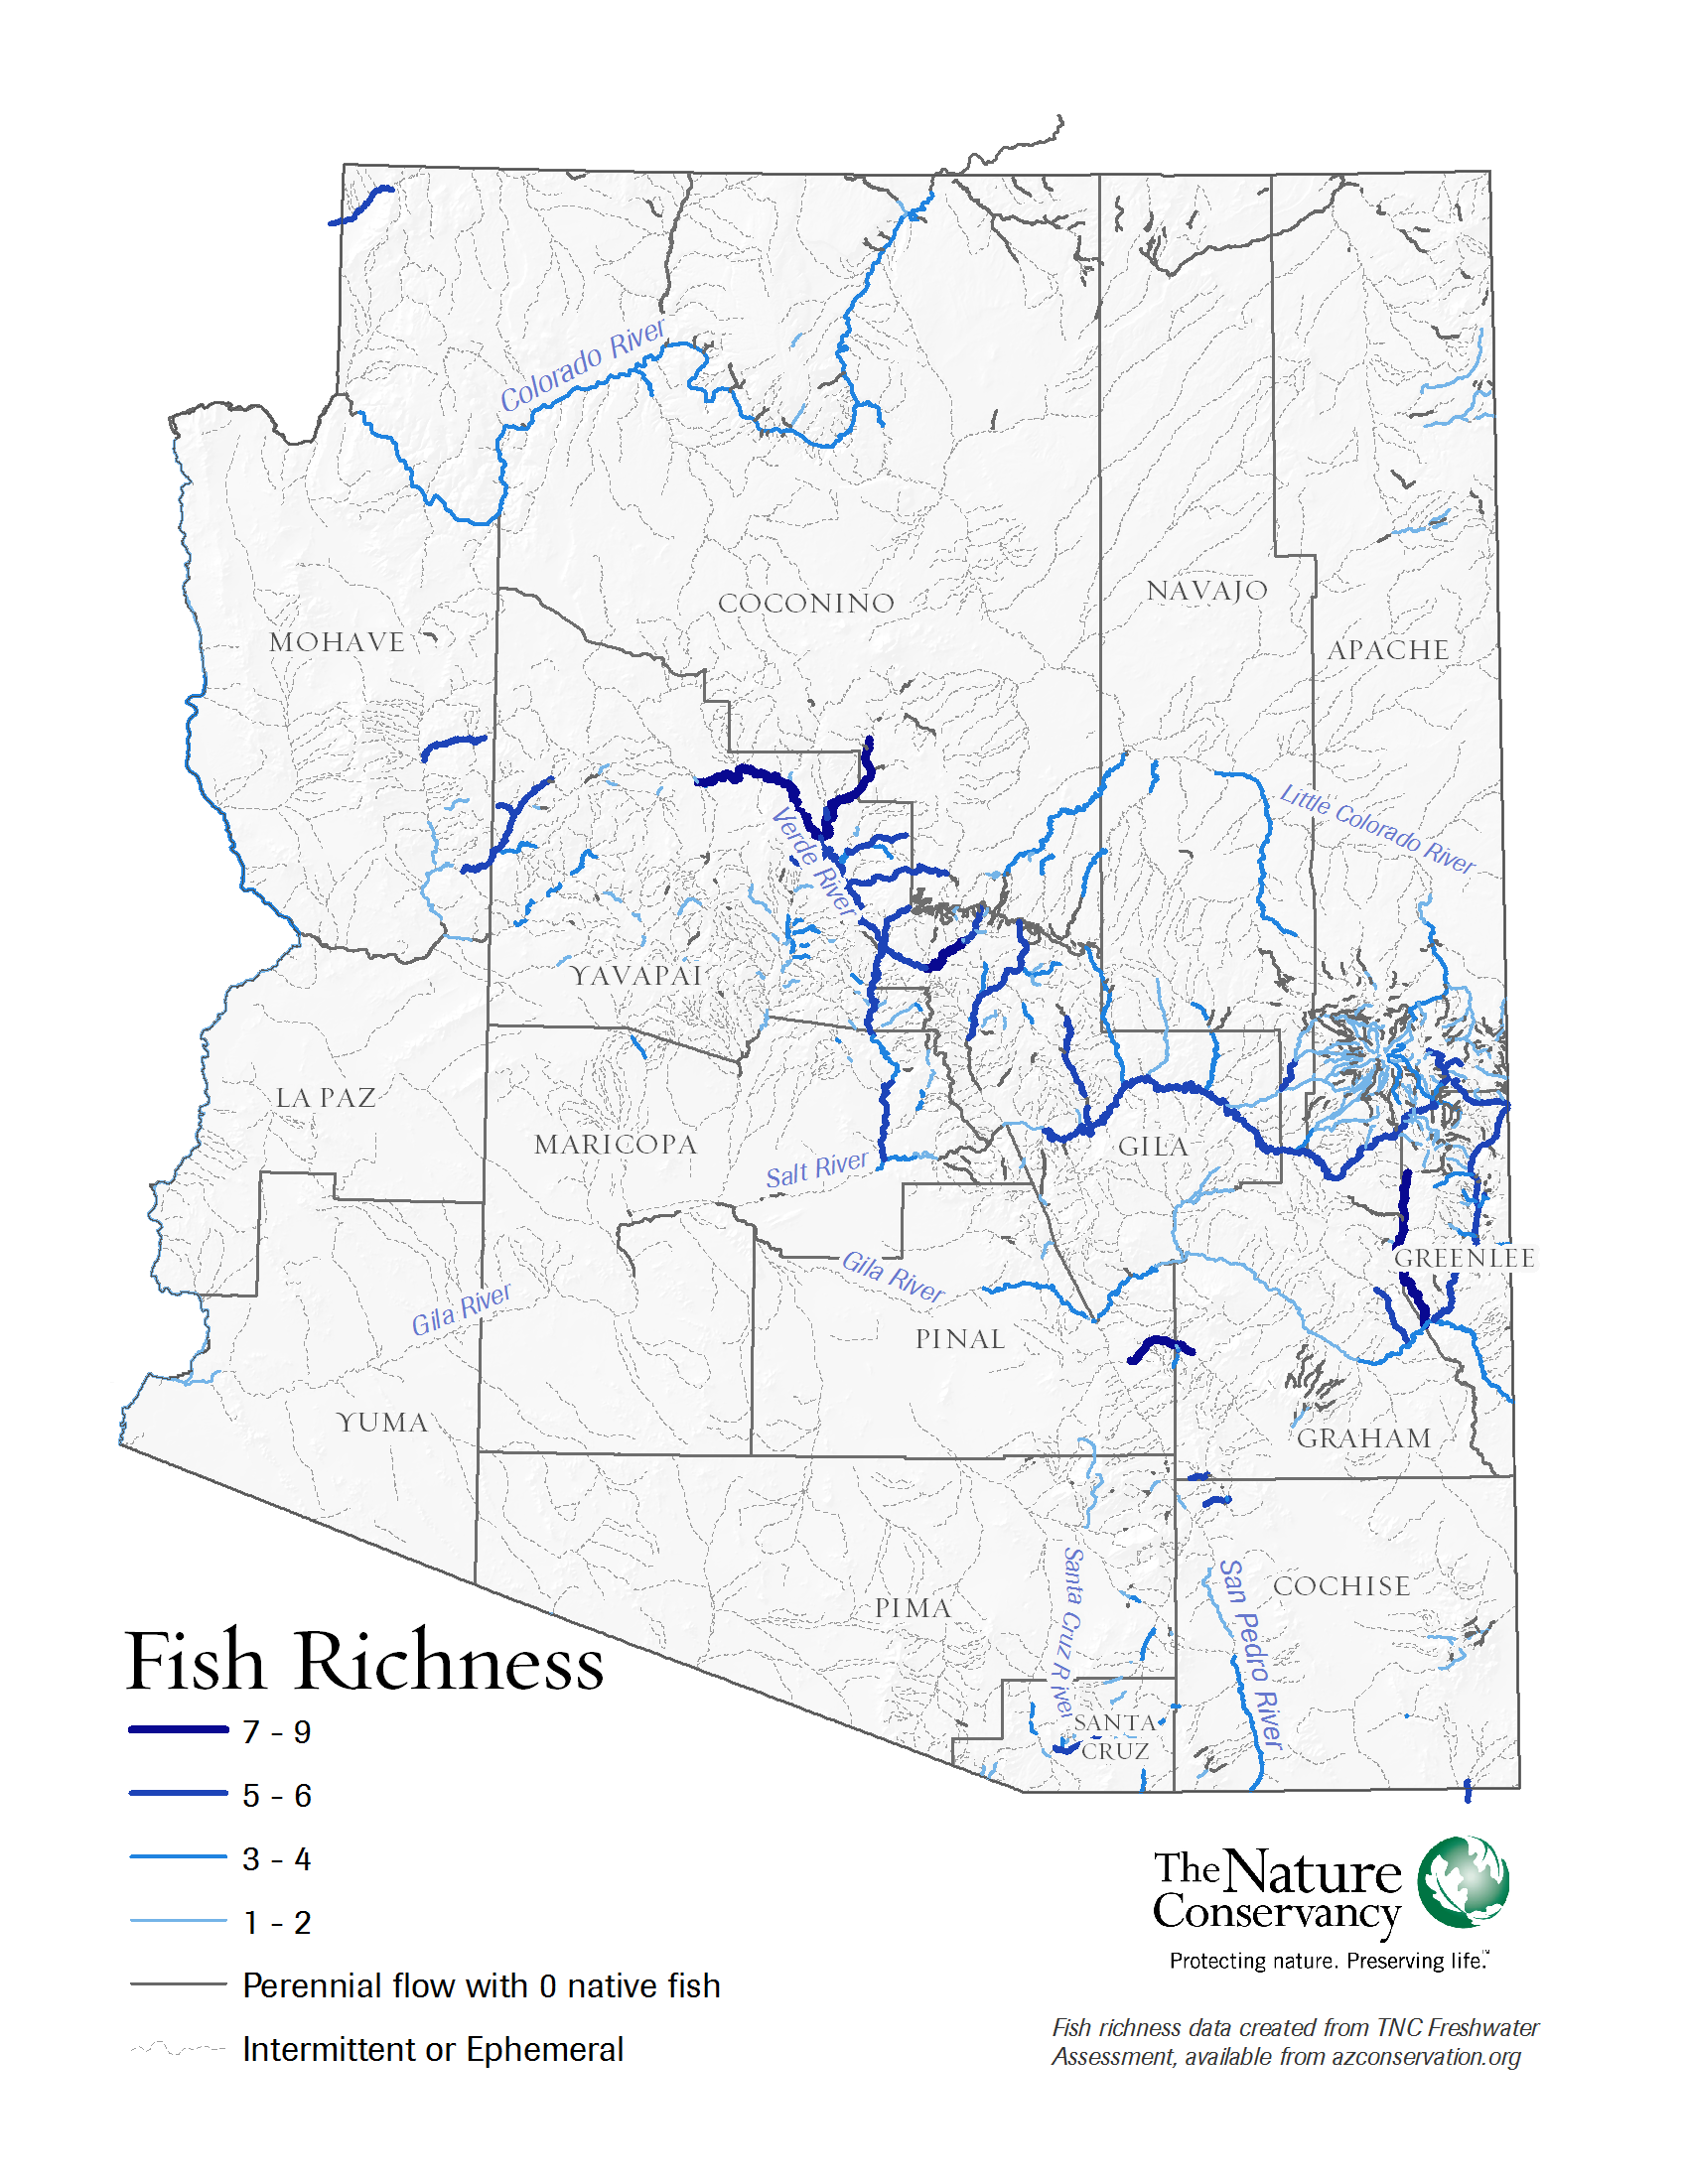 Arizona rivers fish richness map the nature conservancy for Best fishing in arizona